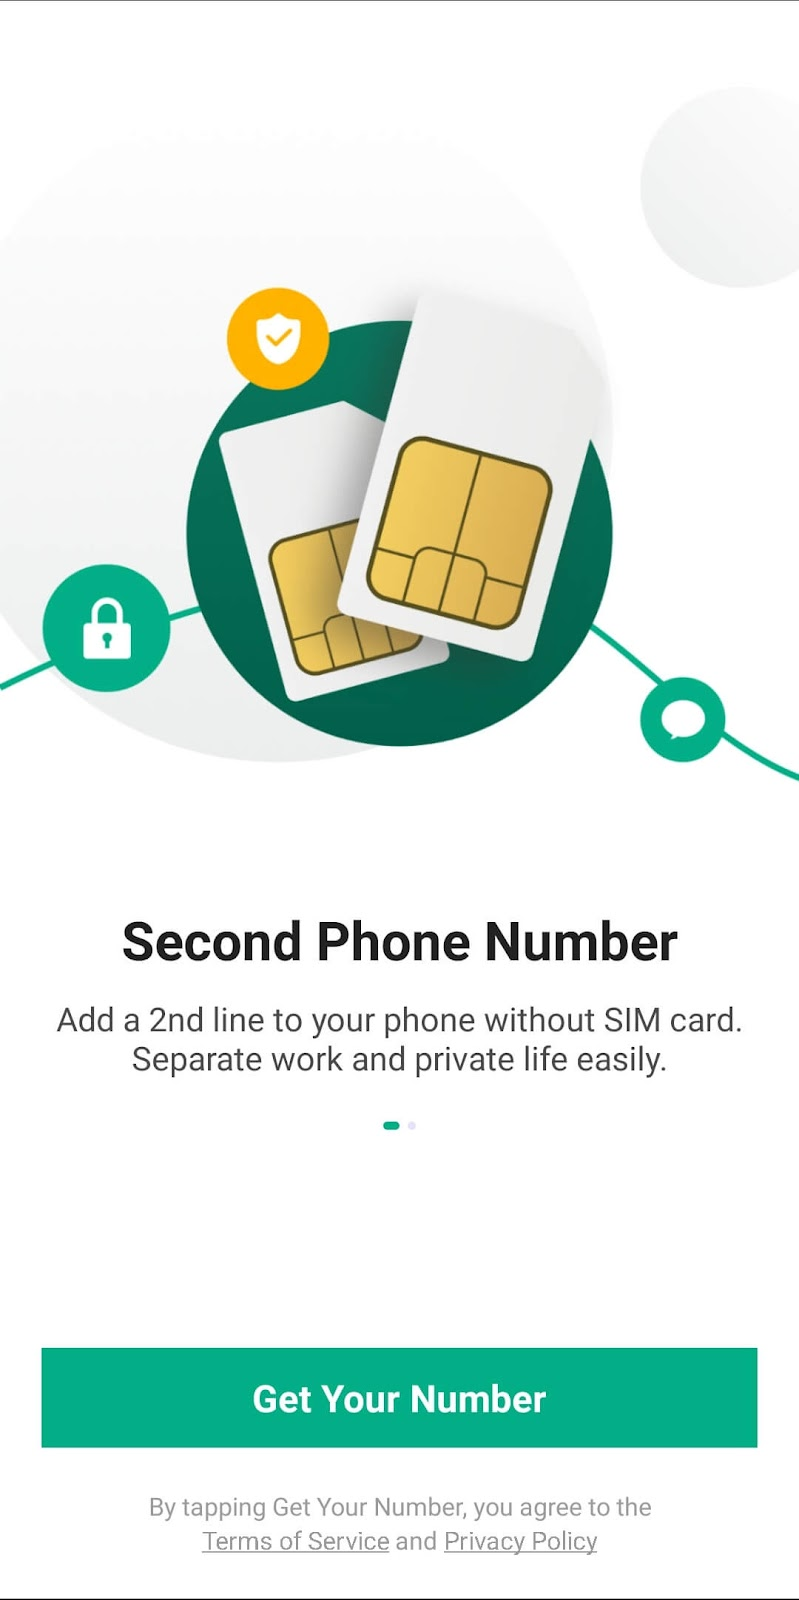 Get your number